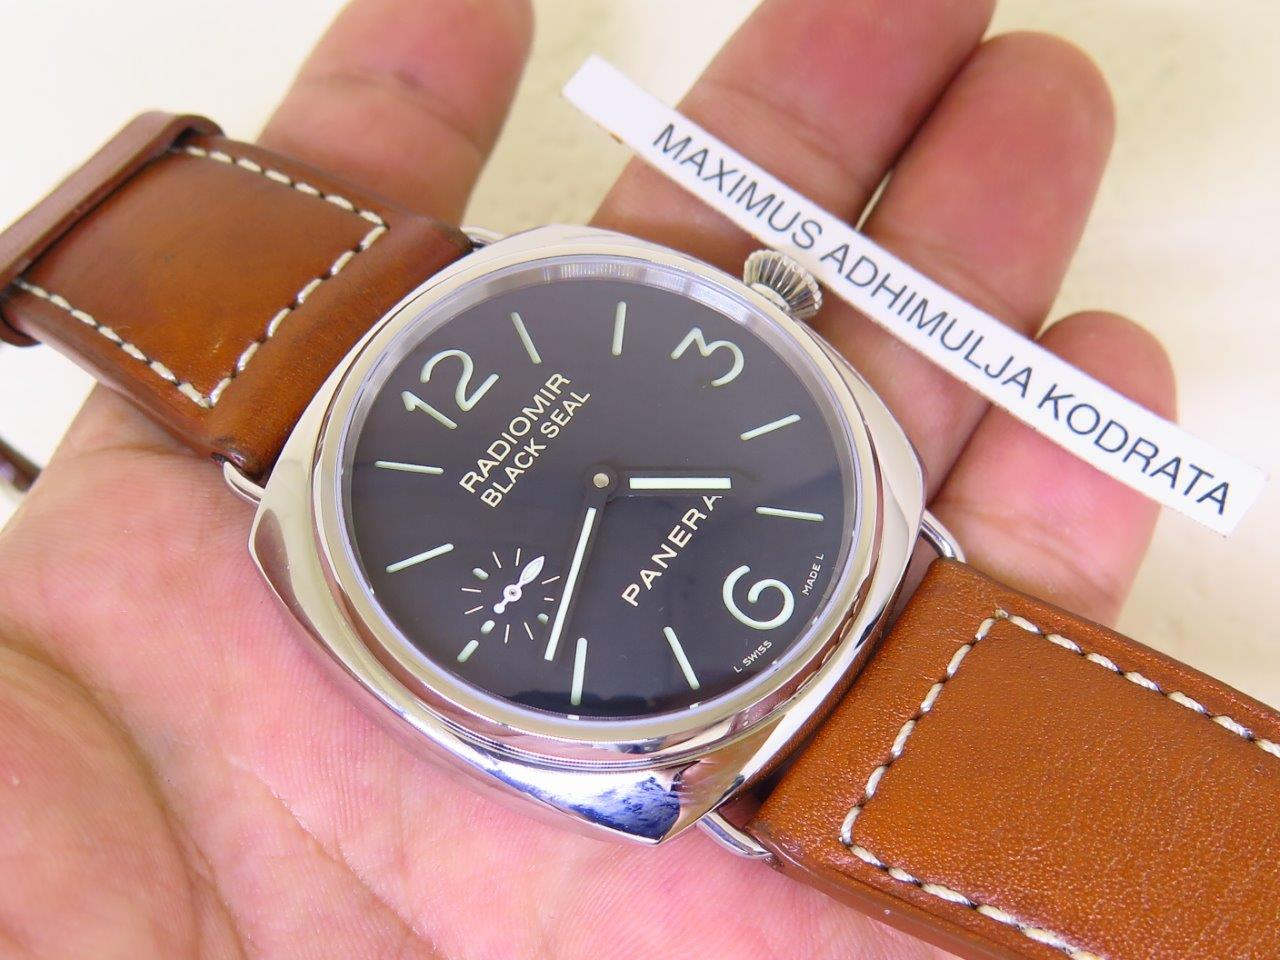 PANERAI RADIOMIR BLACK SEAL PAM 183 - MANUAL WINDING